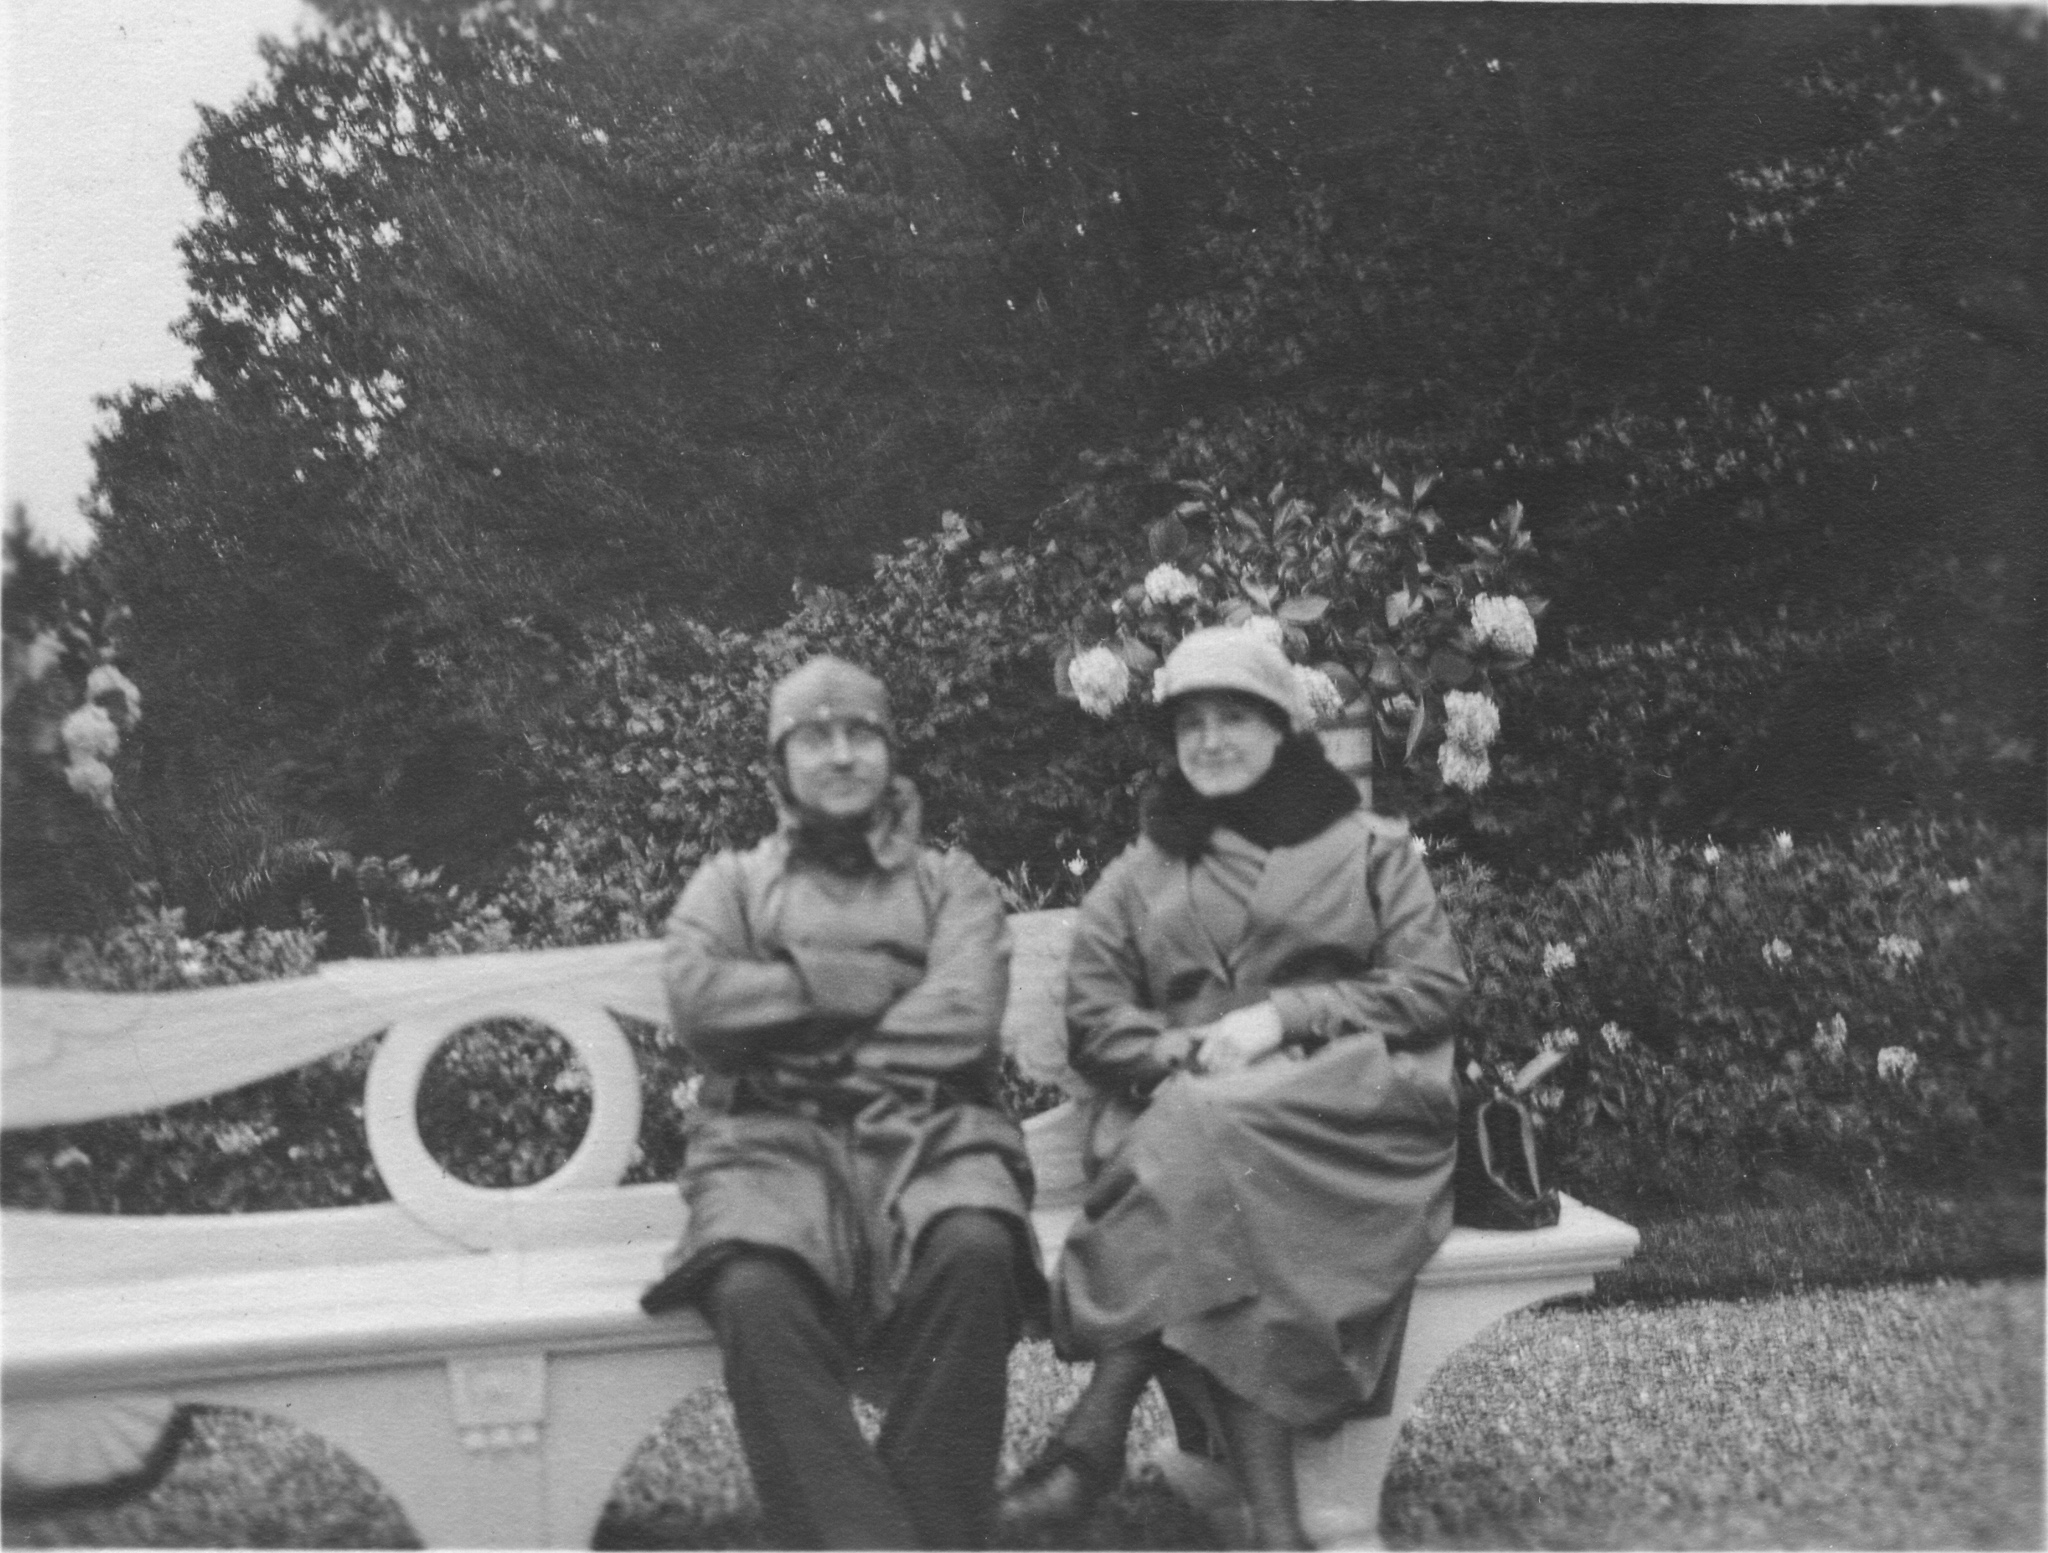 black and white photo of man and woman on a bench